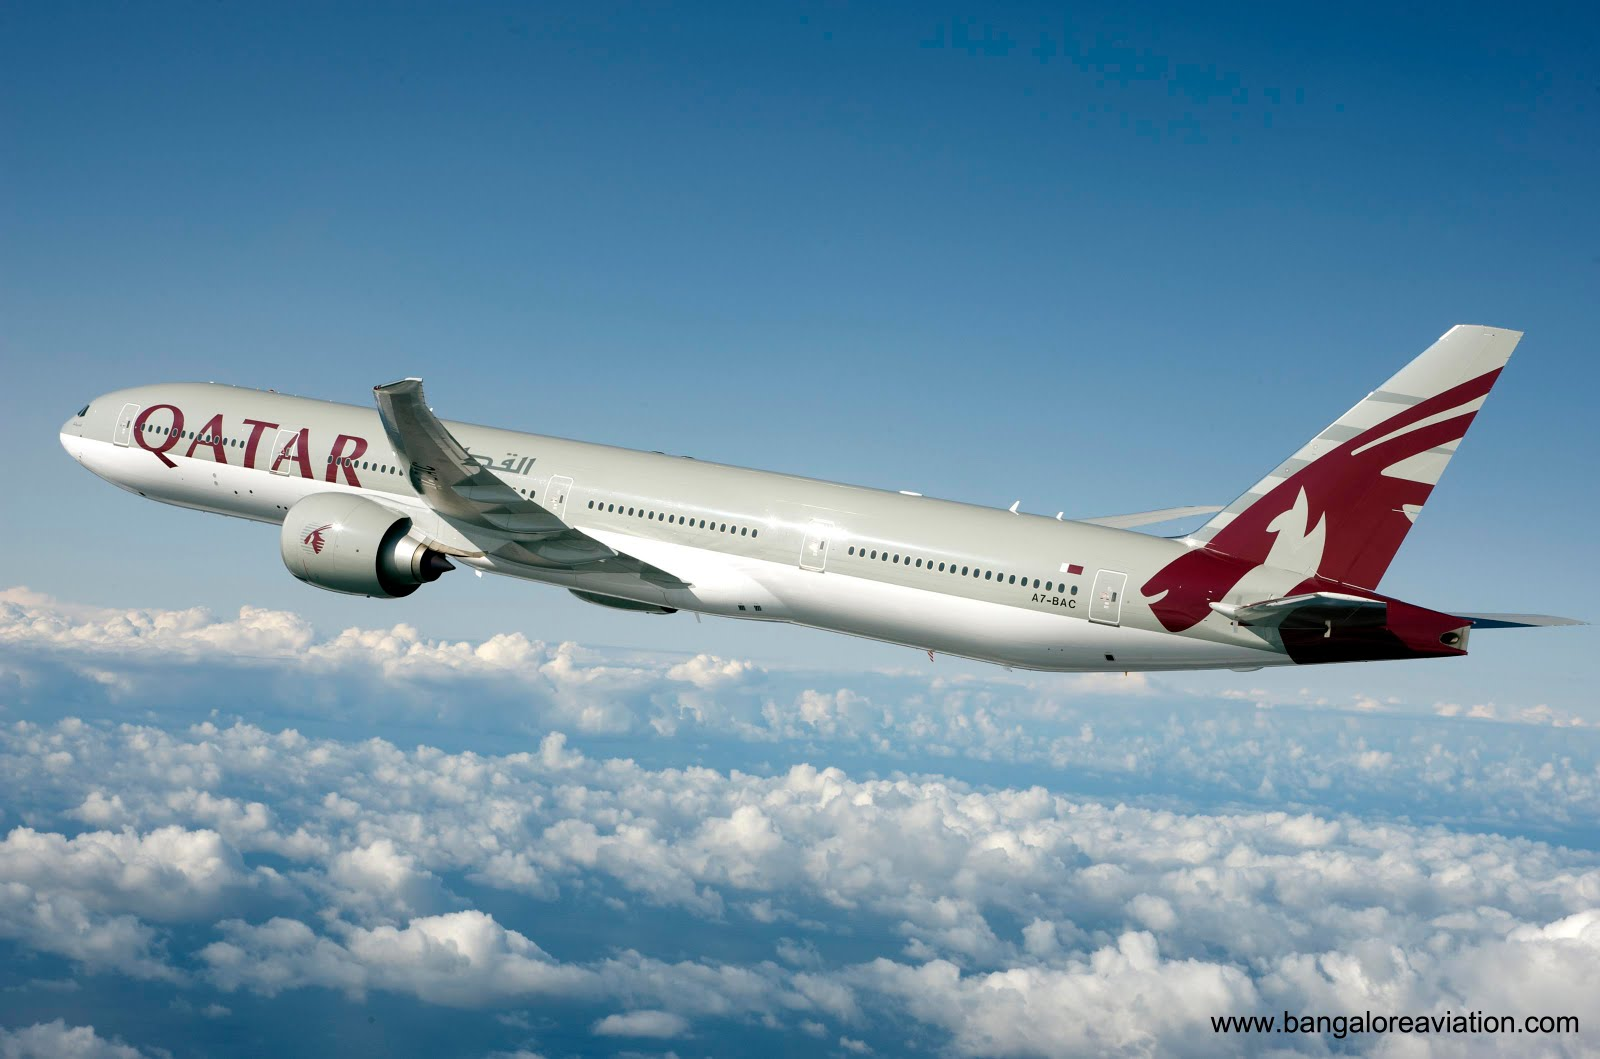 qatar airways 7 p s Qatar airways has been adamant in the past that it does not receive any hidden qatar airways set to grow longhaul ops despite blockade an enac statement issued last month indicates the production carrier has since been renamed from air italy spa to air italy fleet management, s.